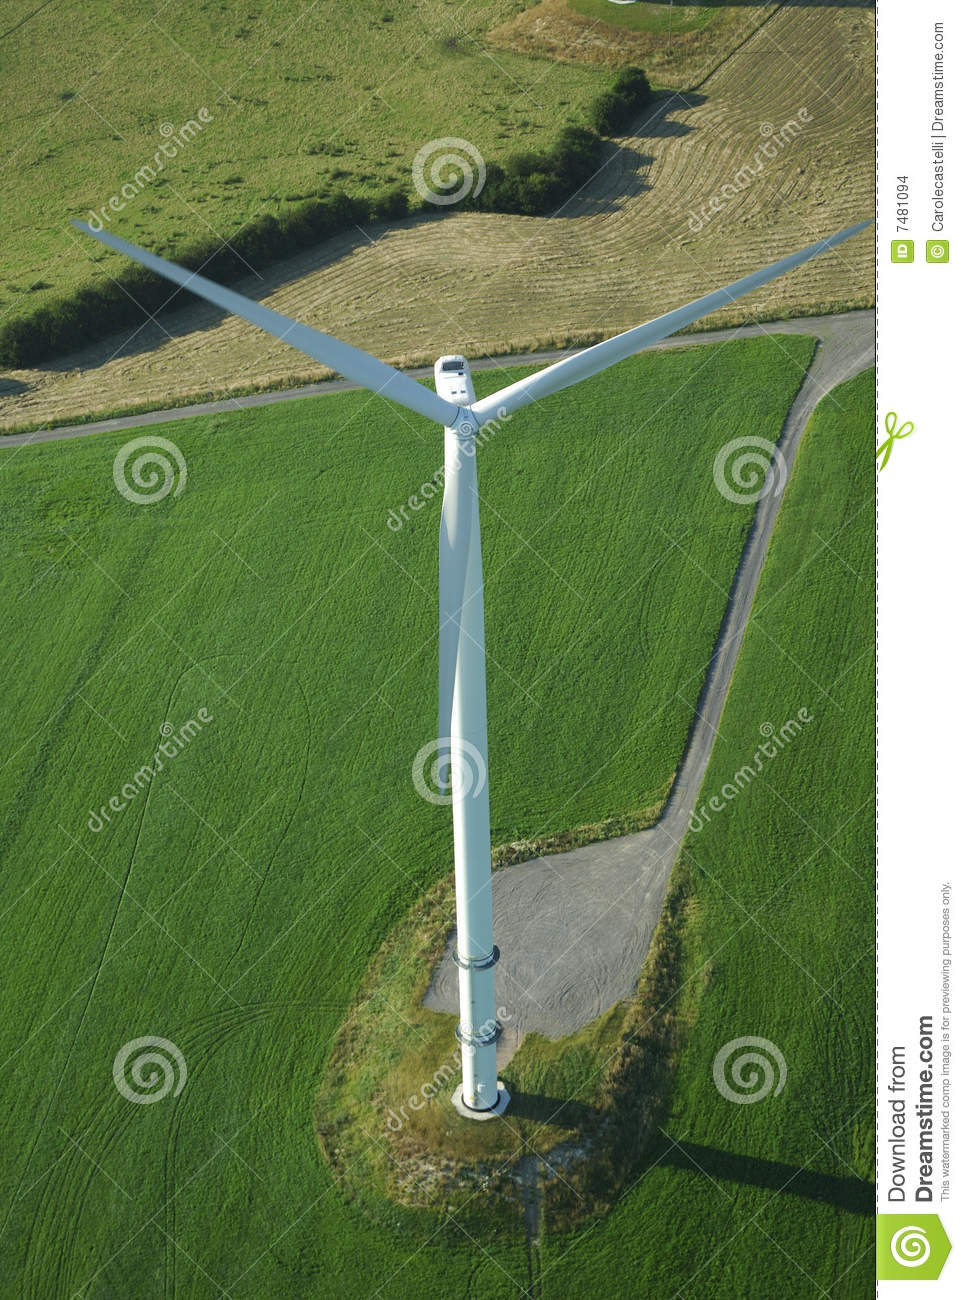 How a Windmill Works